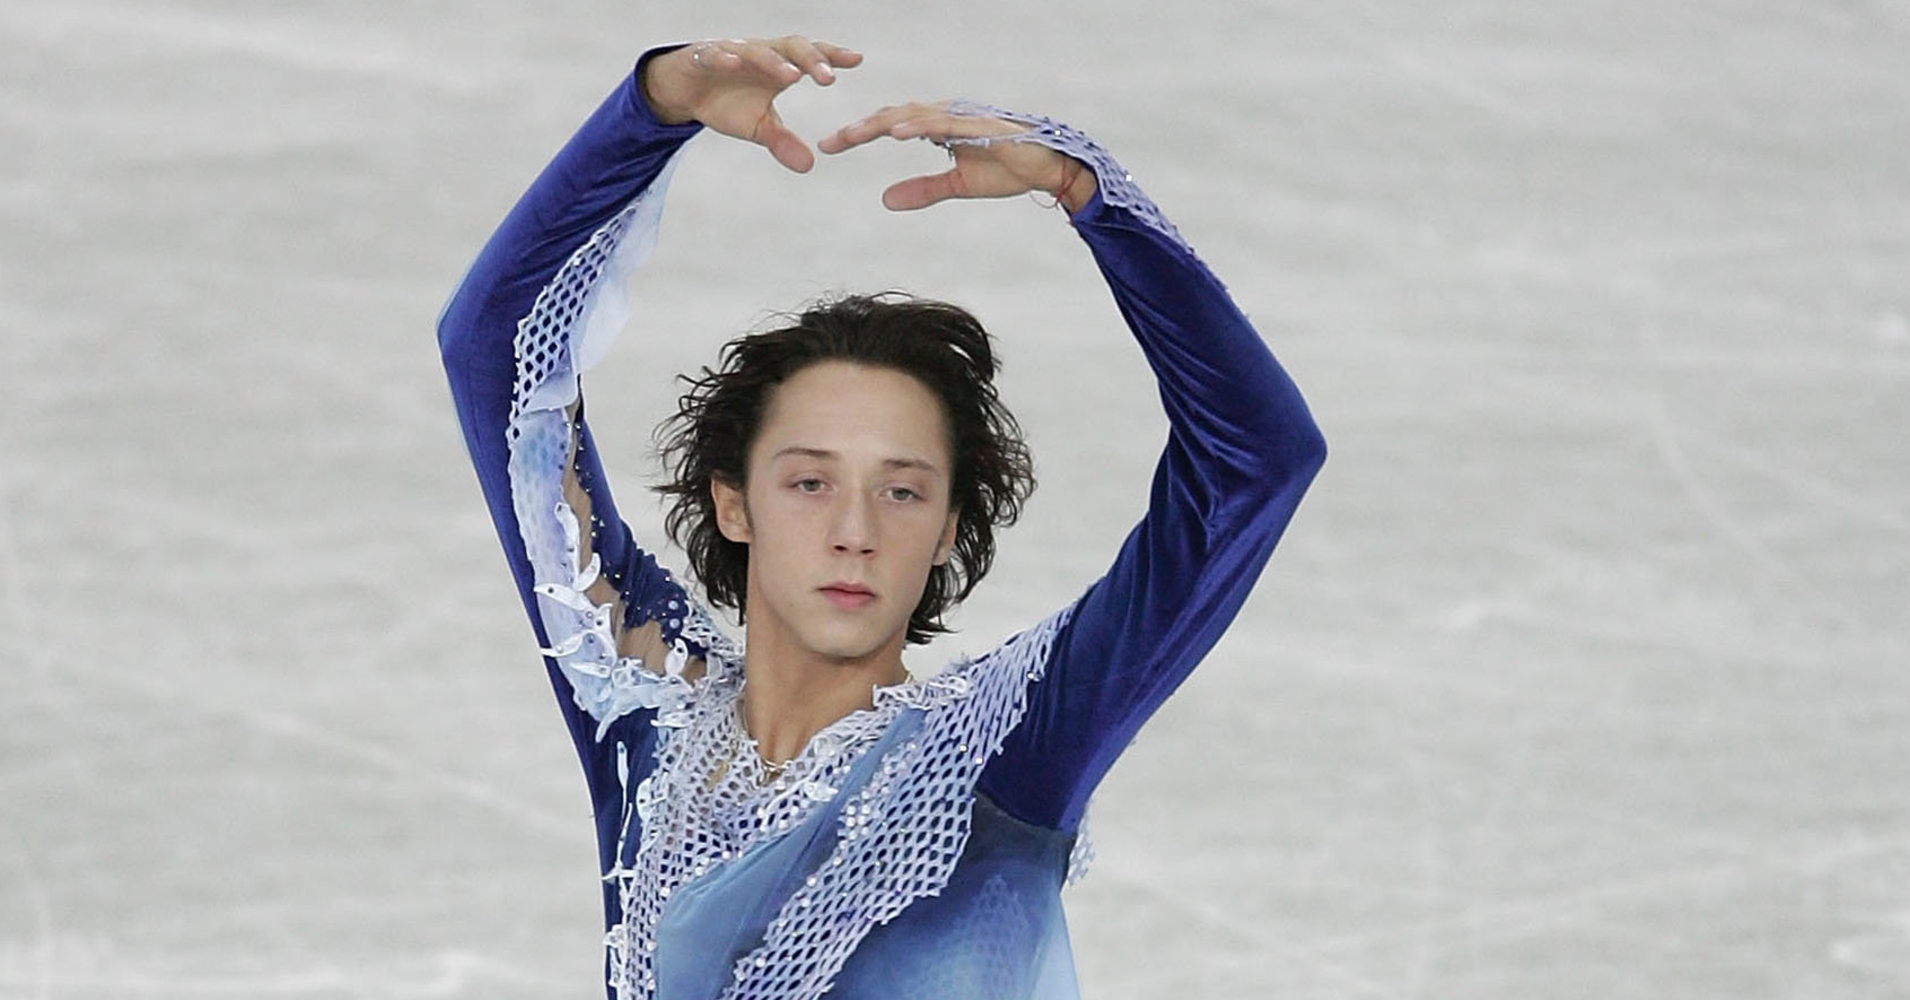 Johnny Weir's Skating Costumes Have Always Been About The Drama